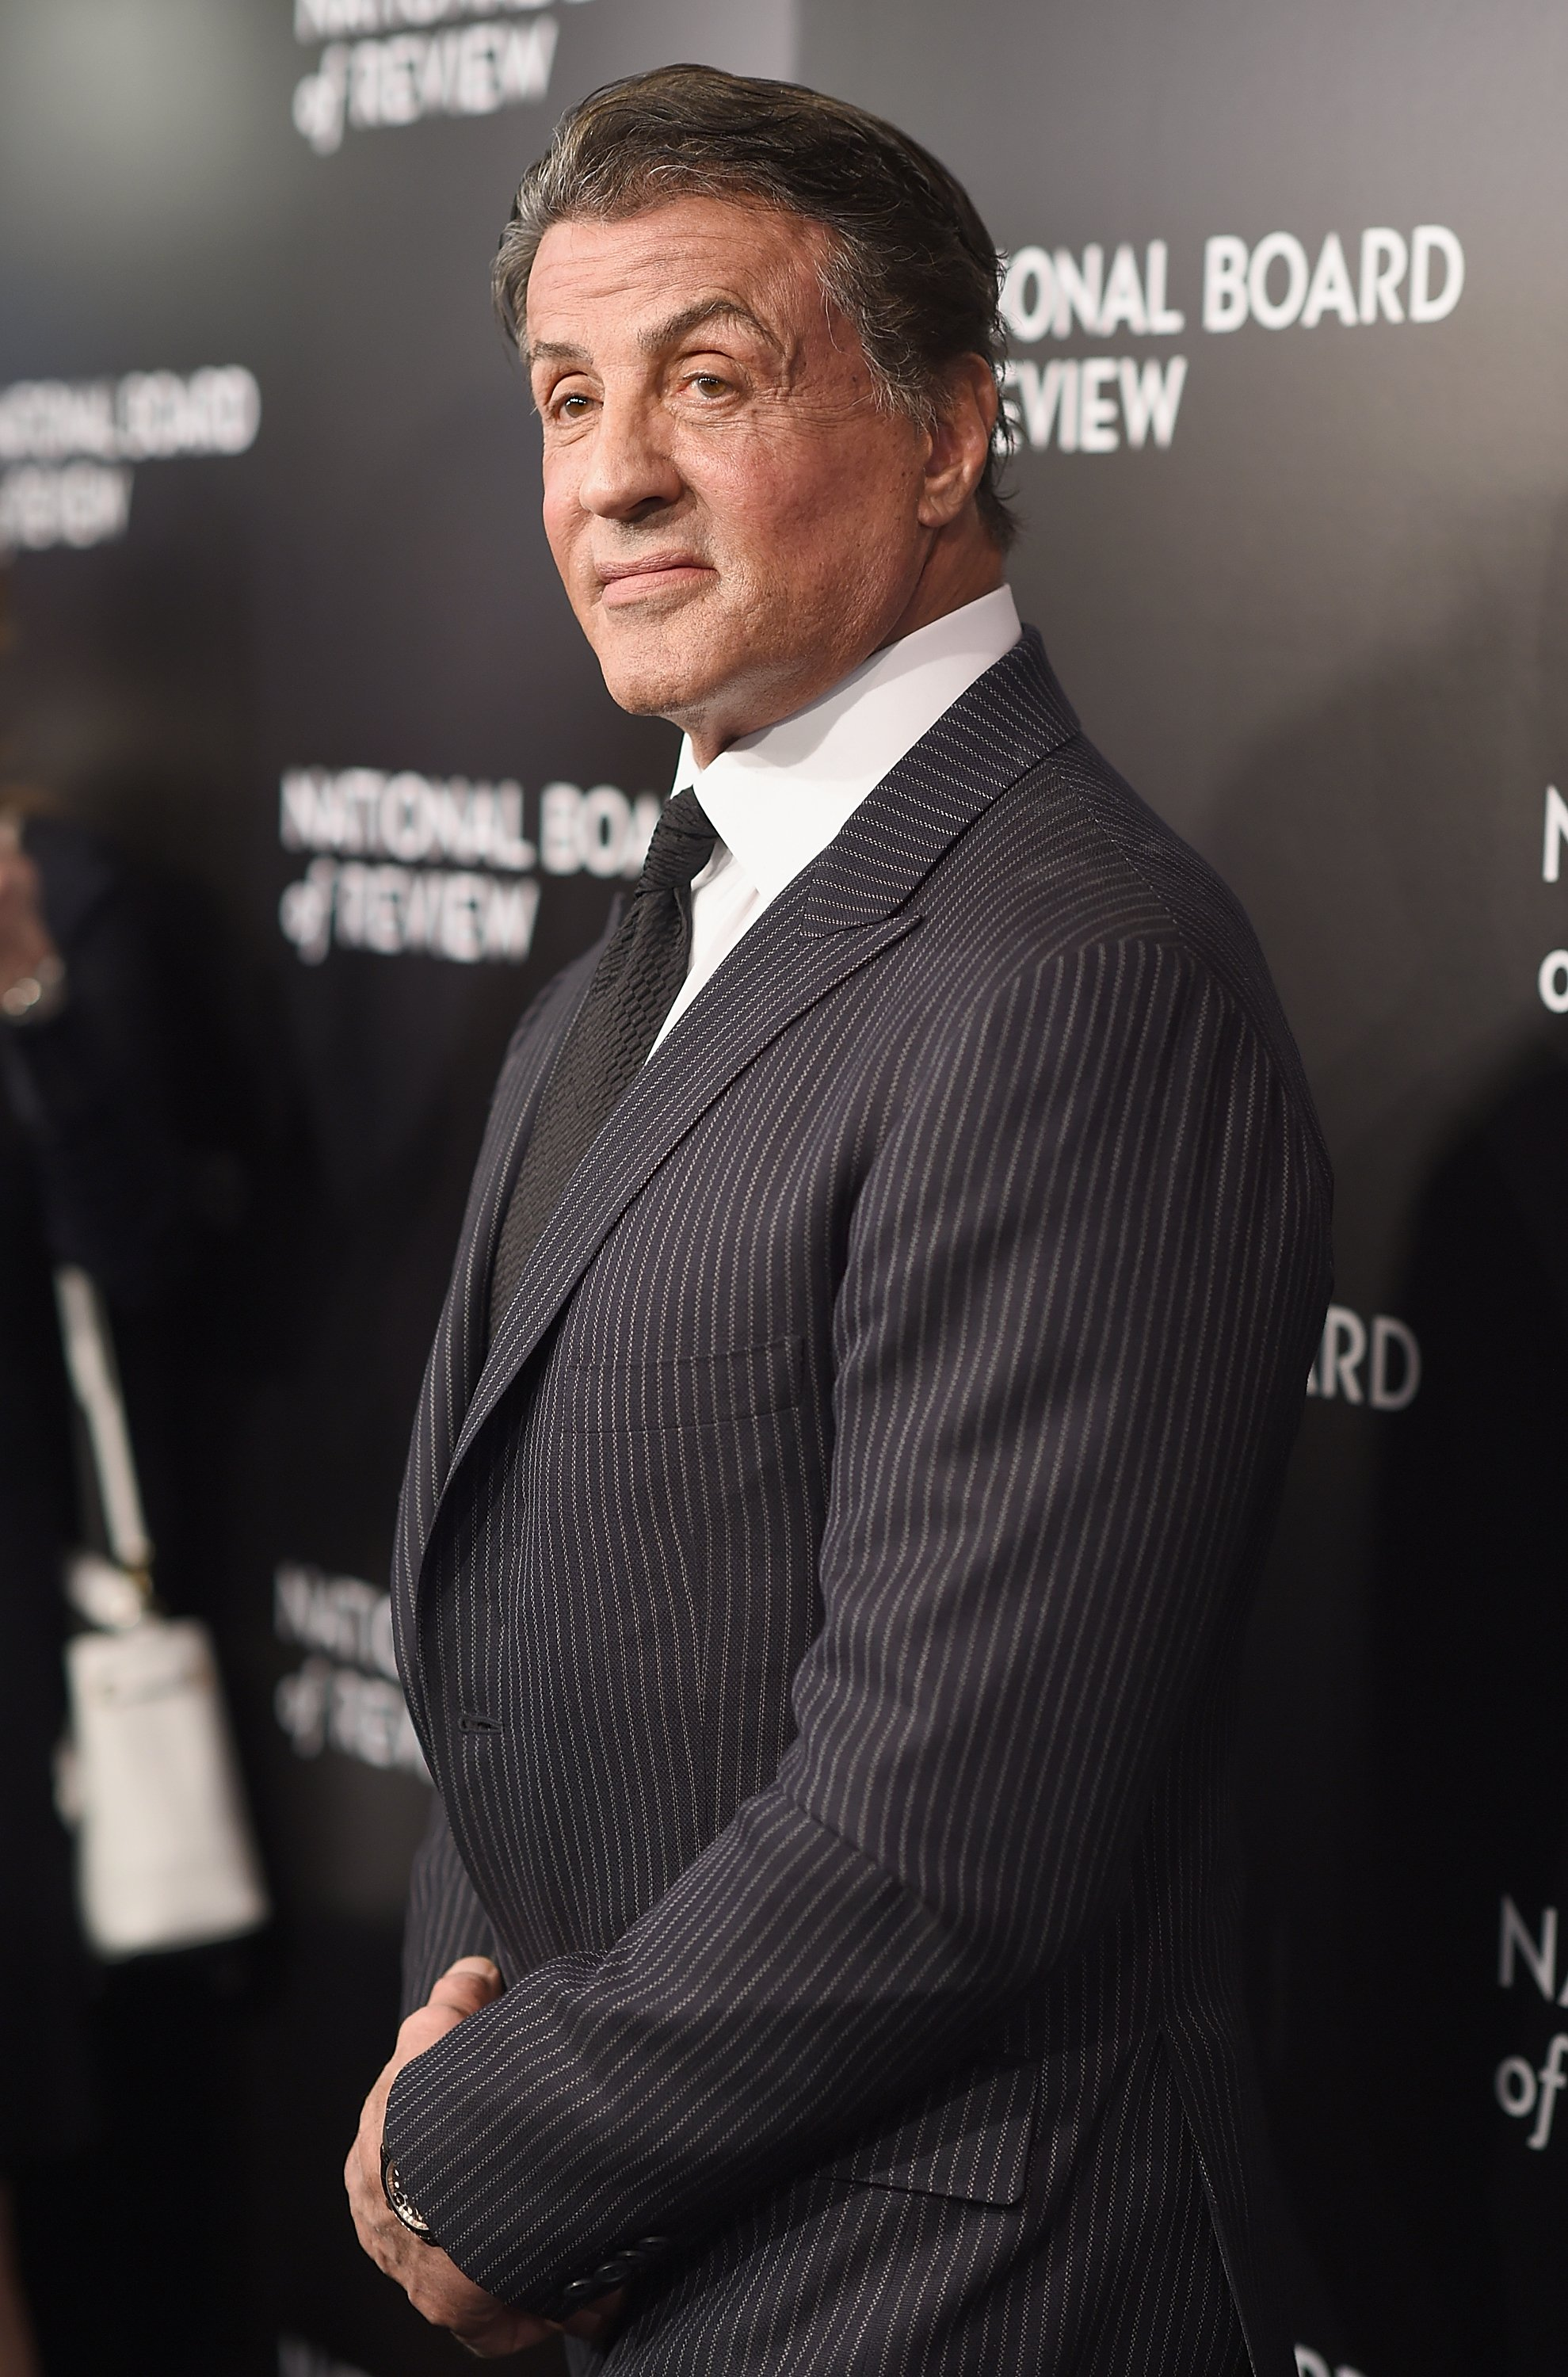 Sylvester Stallone attends the 2015 National Board of Review Gala at Cipriani 42nd Street on January 5, 201,6 in New York City. | Source: Getty Images.